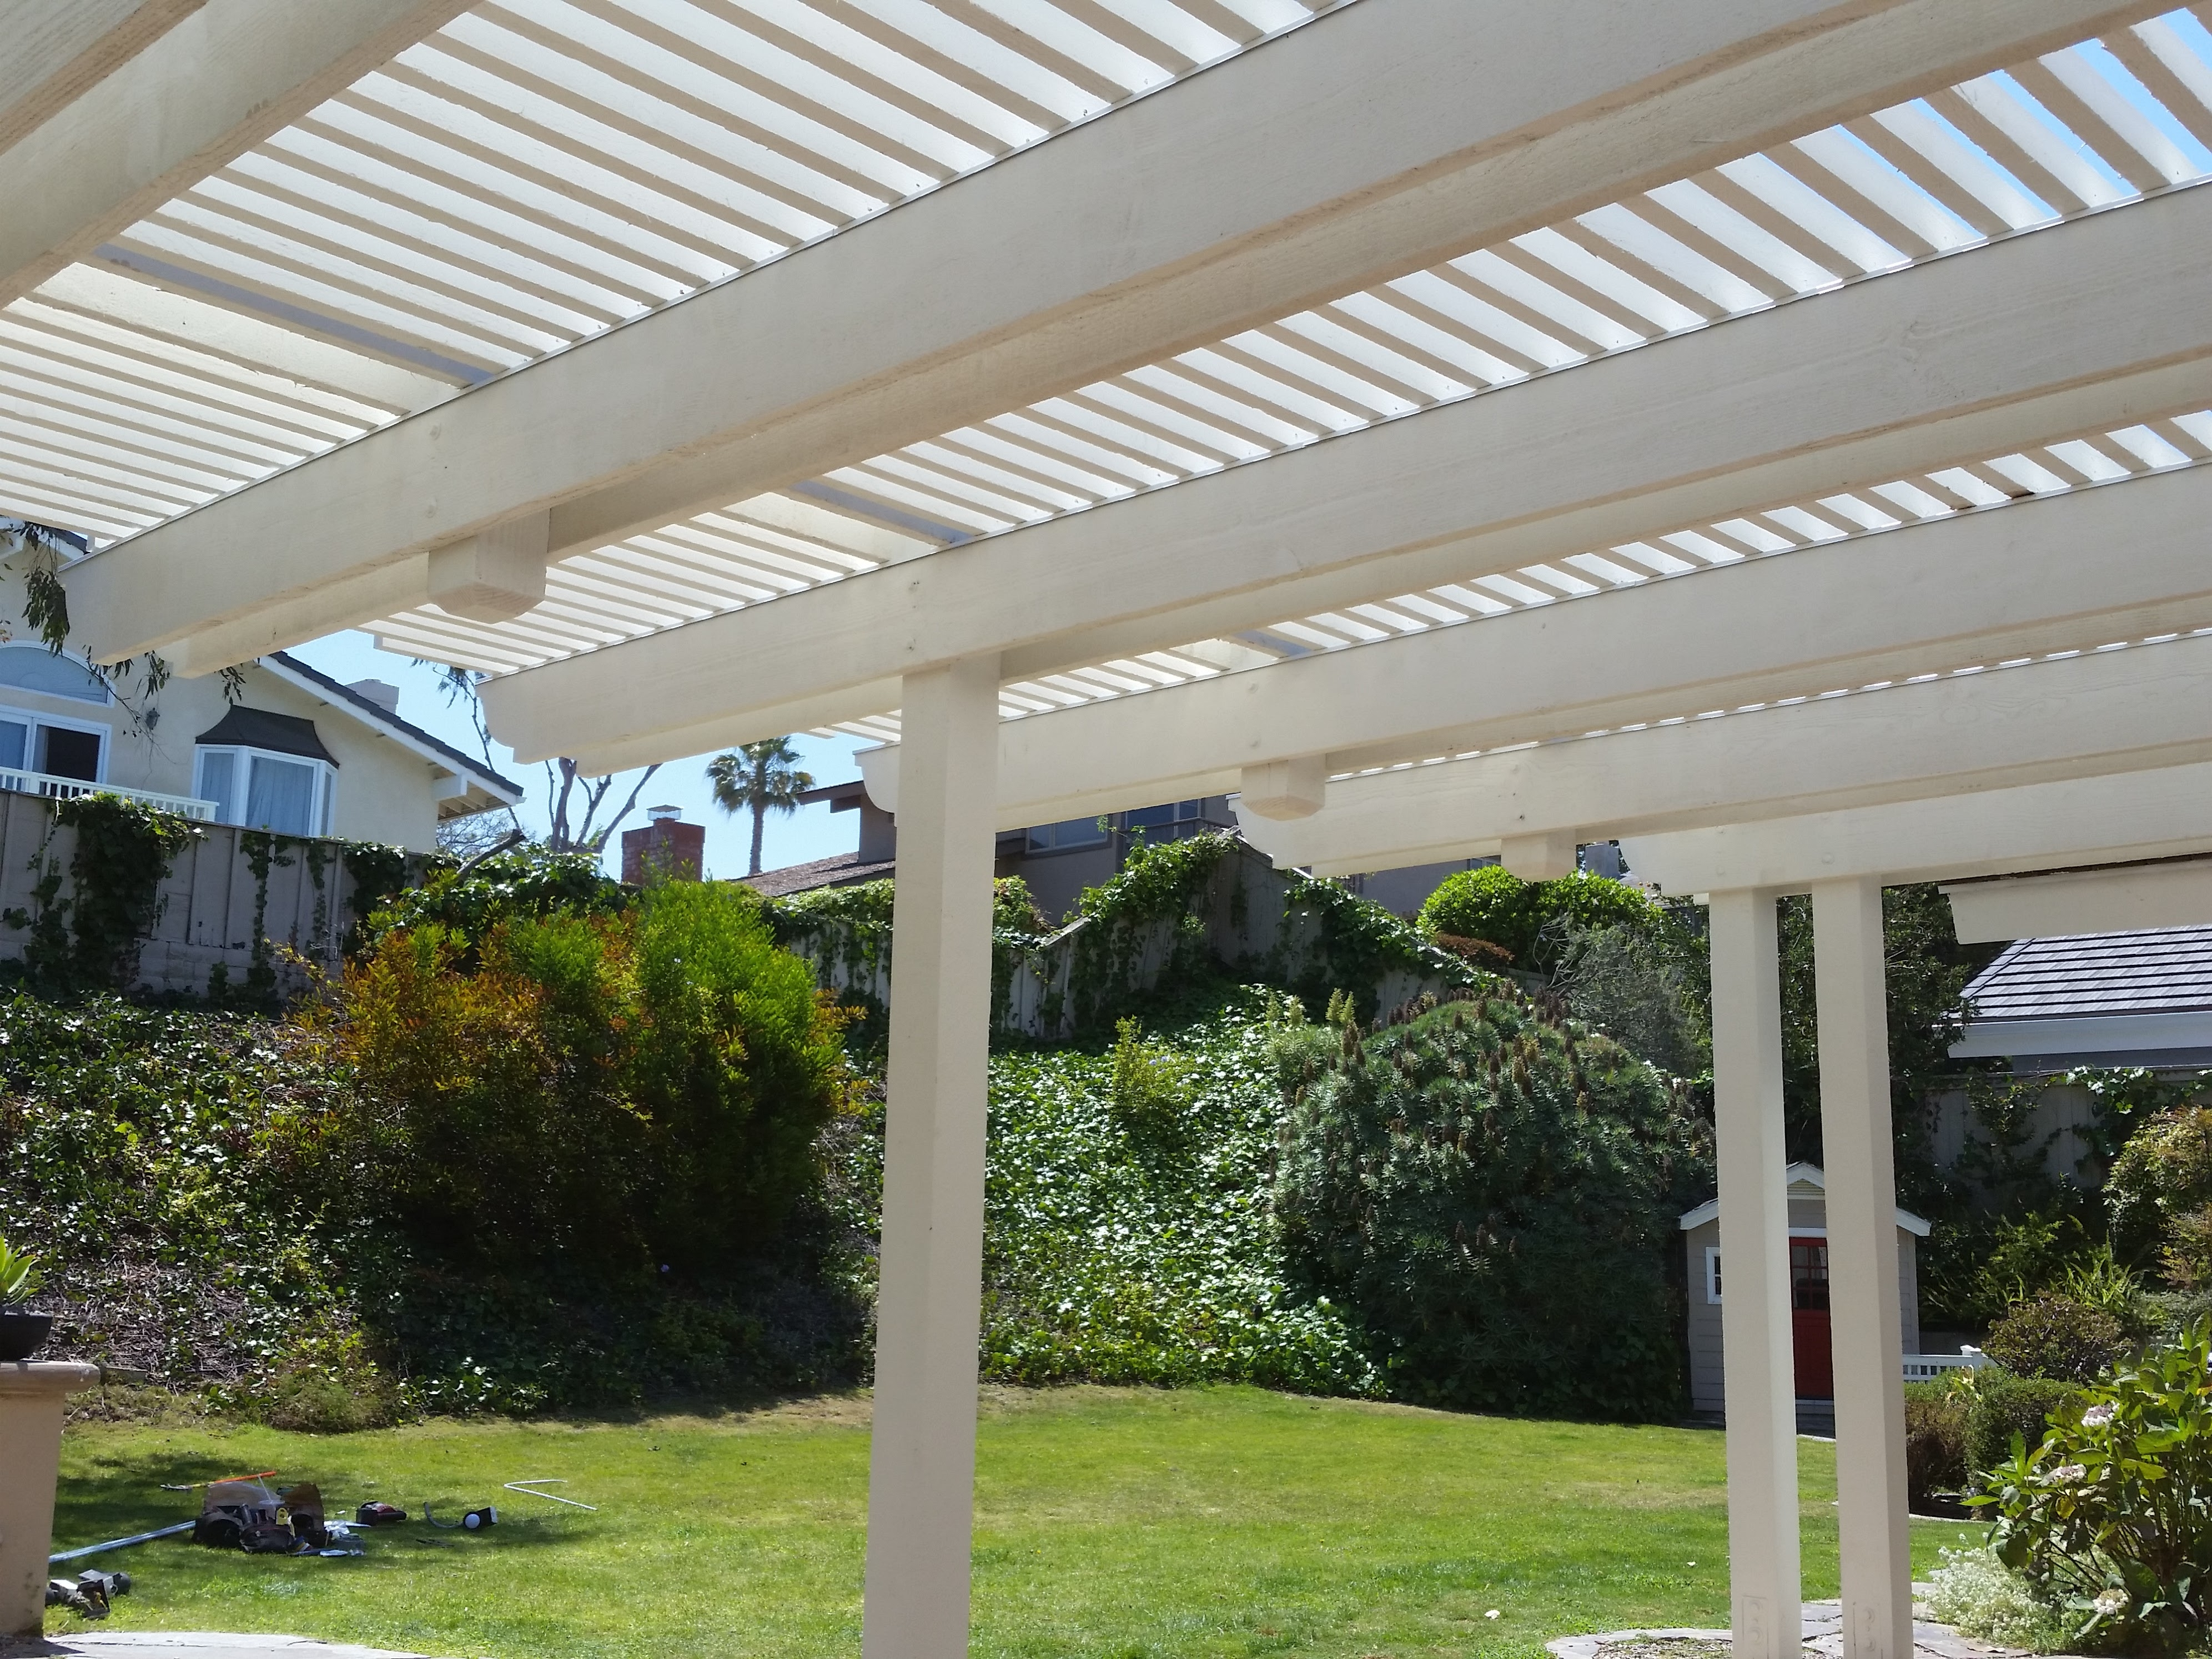 Wood Pergolas & Patio Covers Mission Viejo With Blue Knight